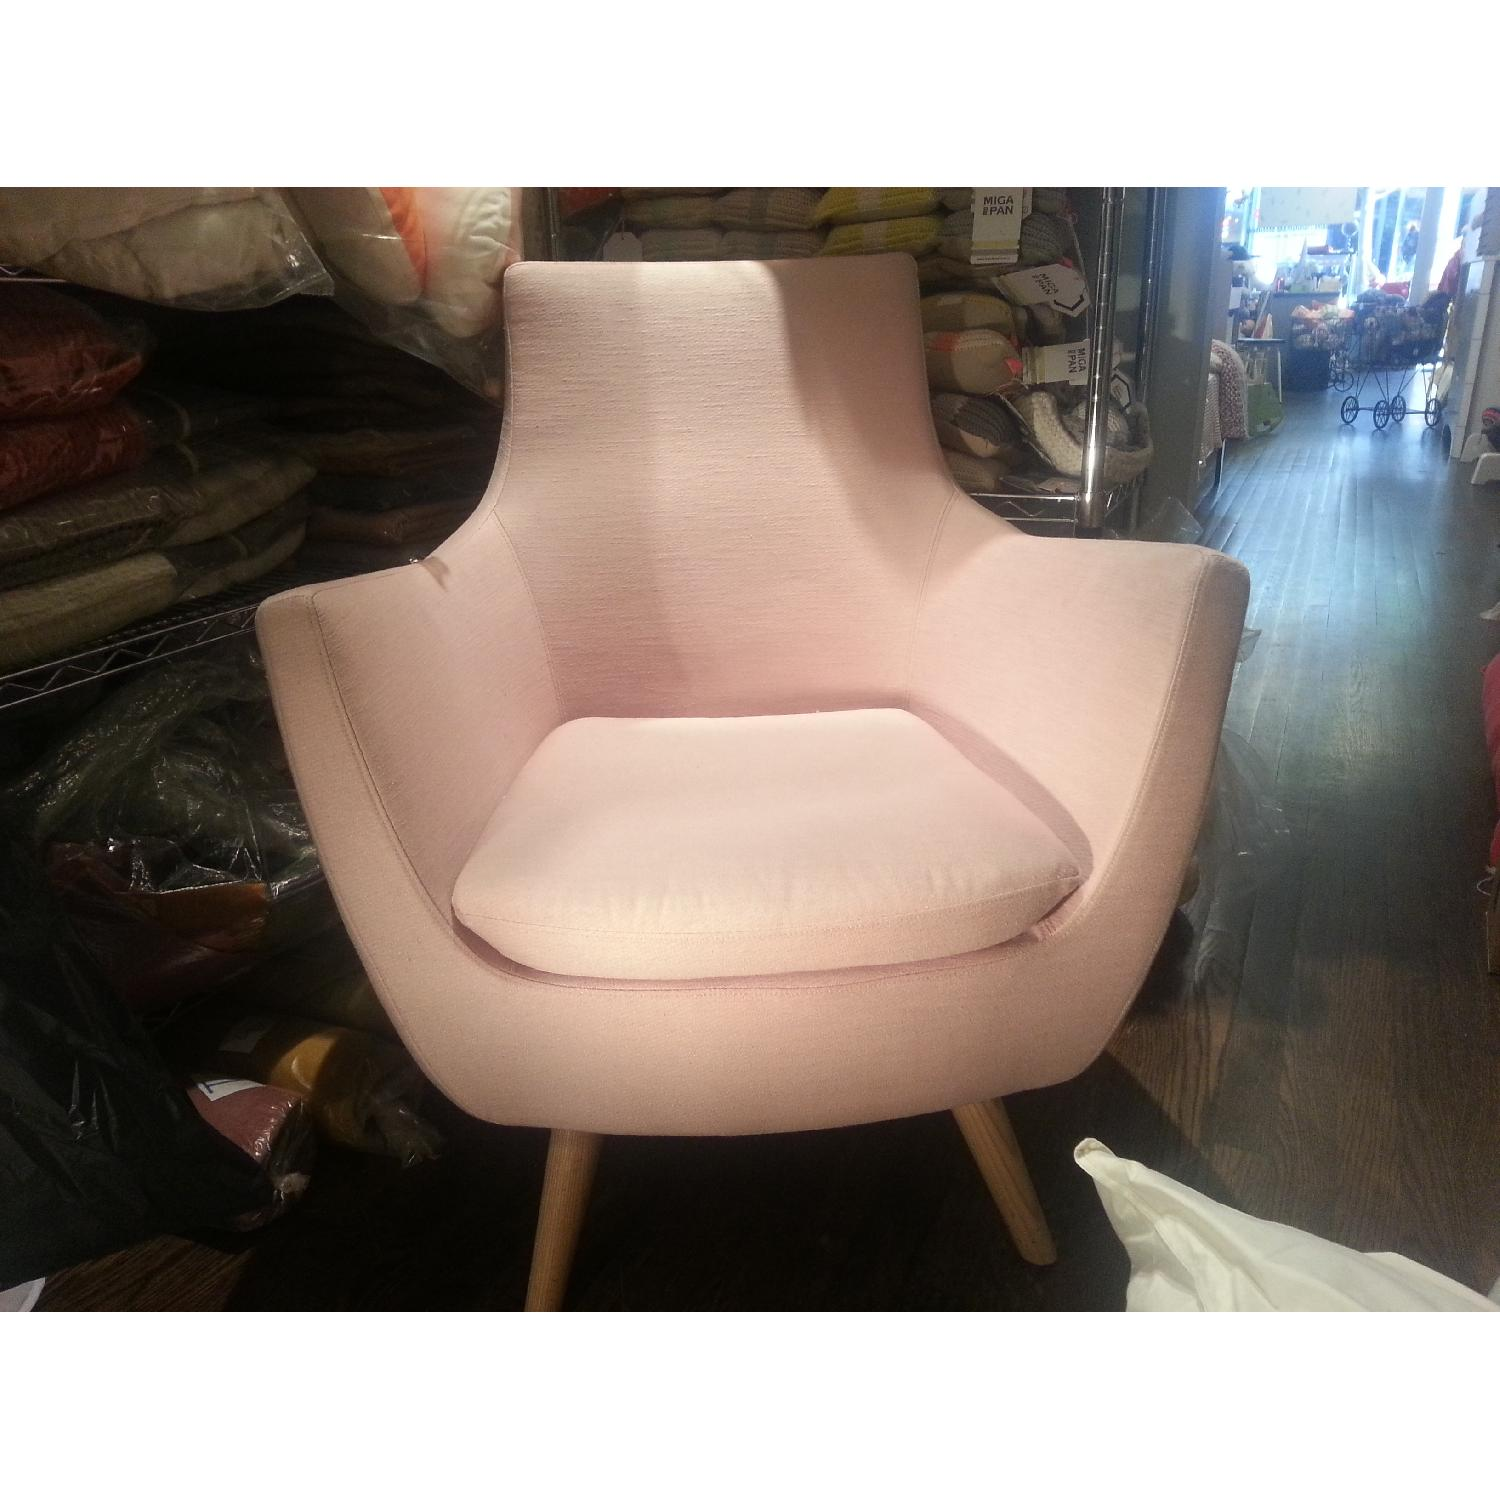 ABC Carpet & Home Pittsburg Pink Armchair - image-5